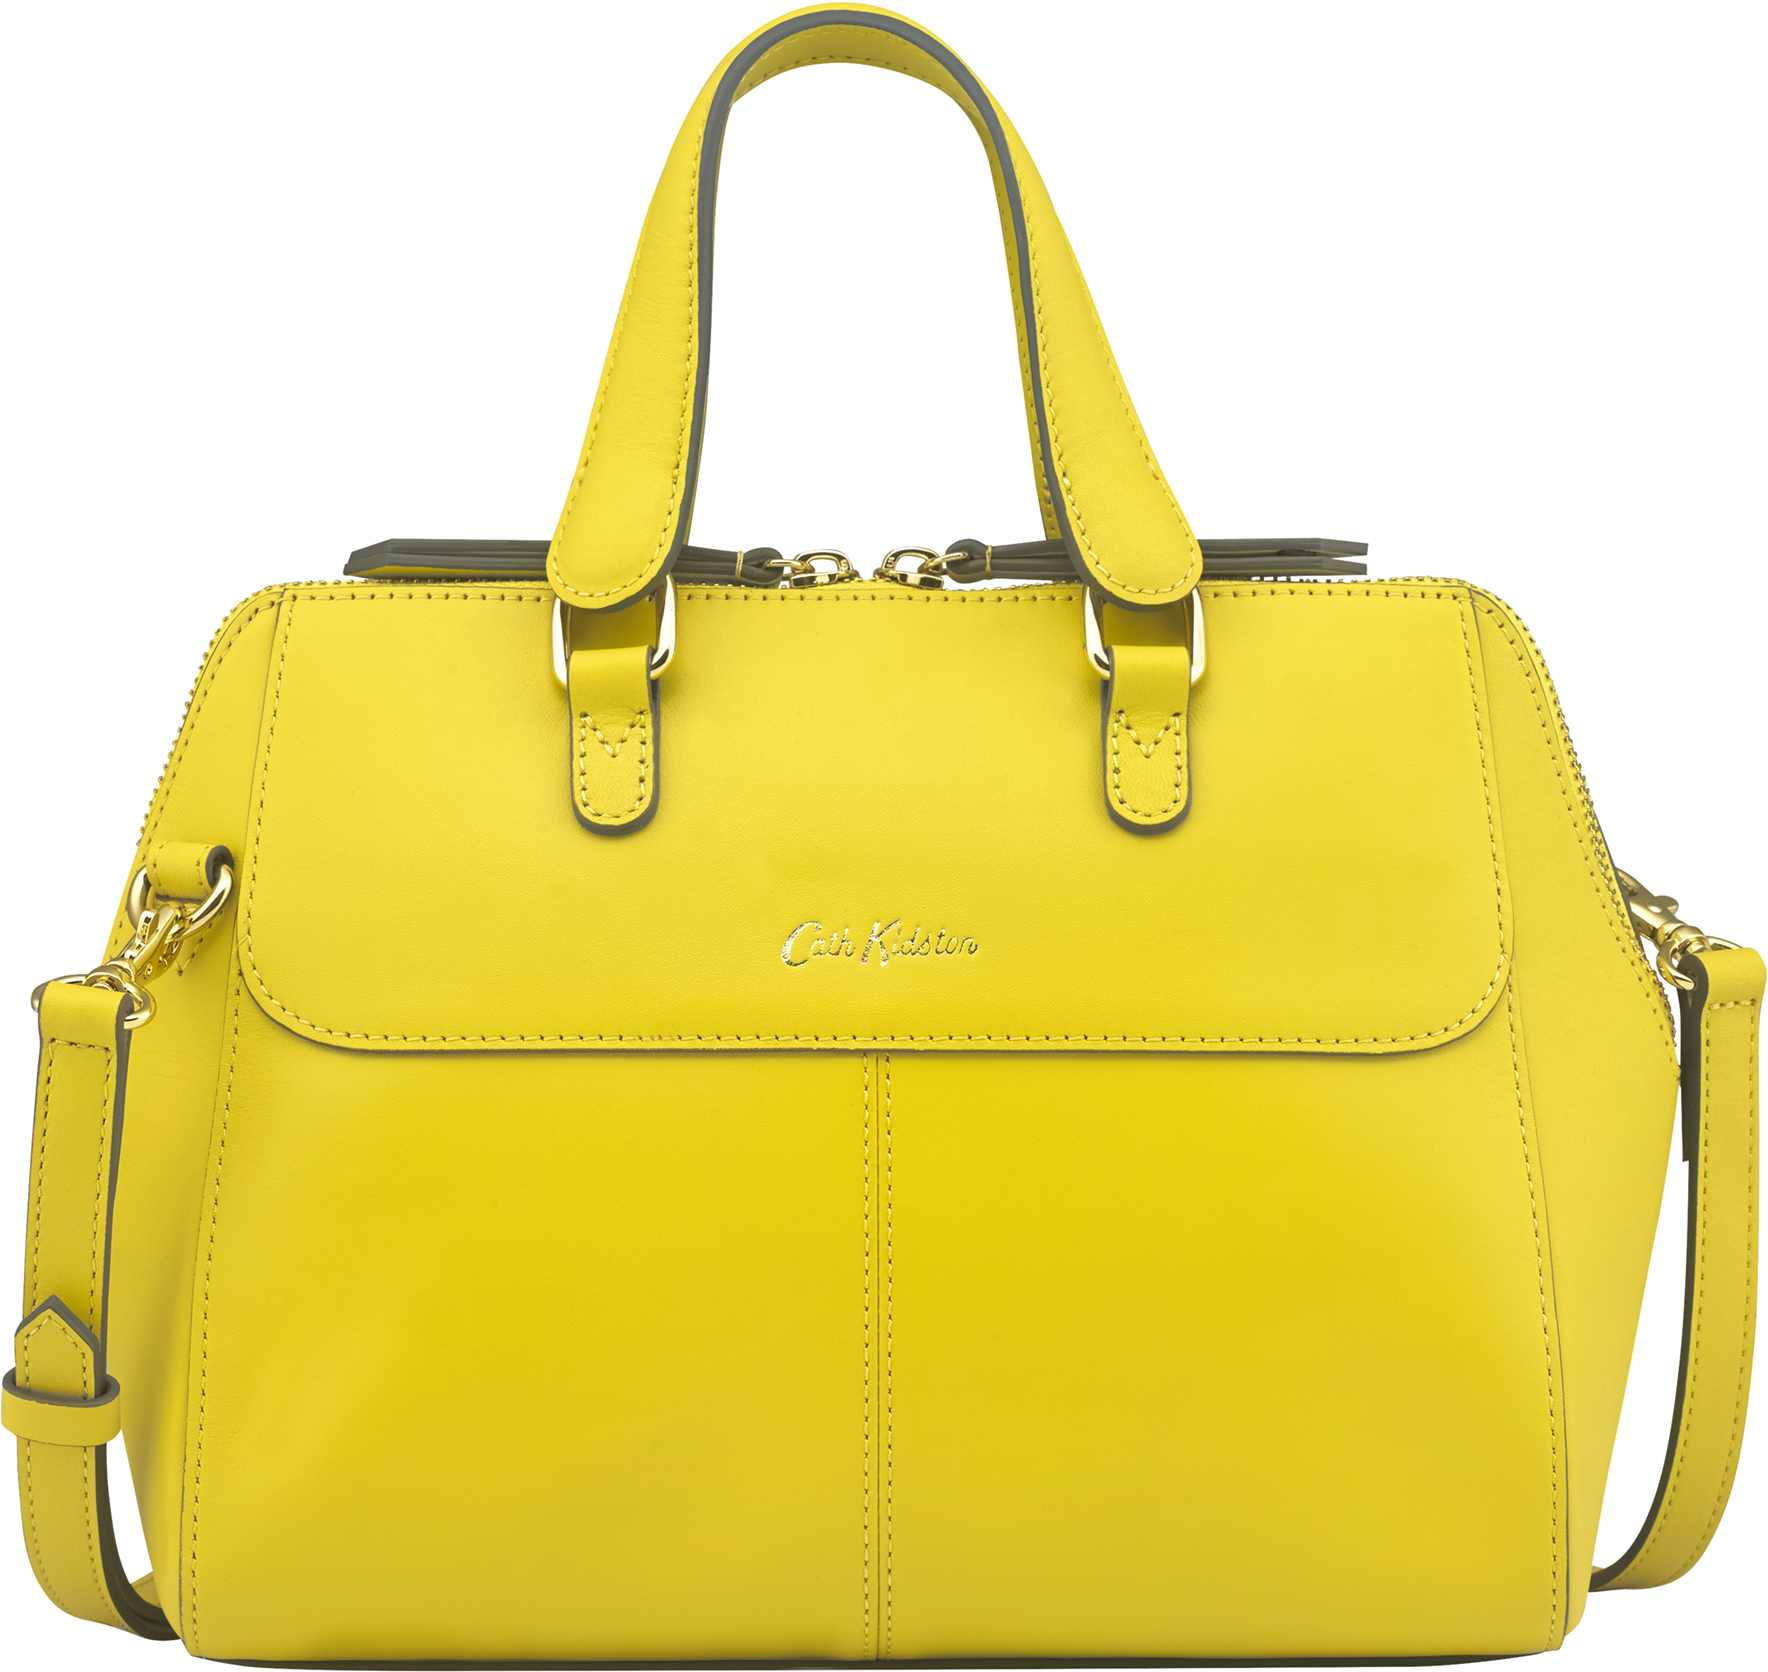 Cath Kidston Golden Yellow Henshall Leather Bag